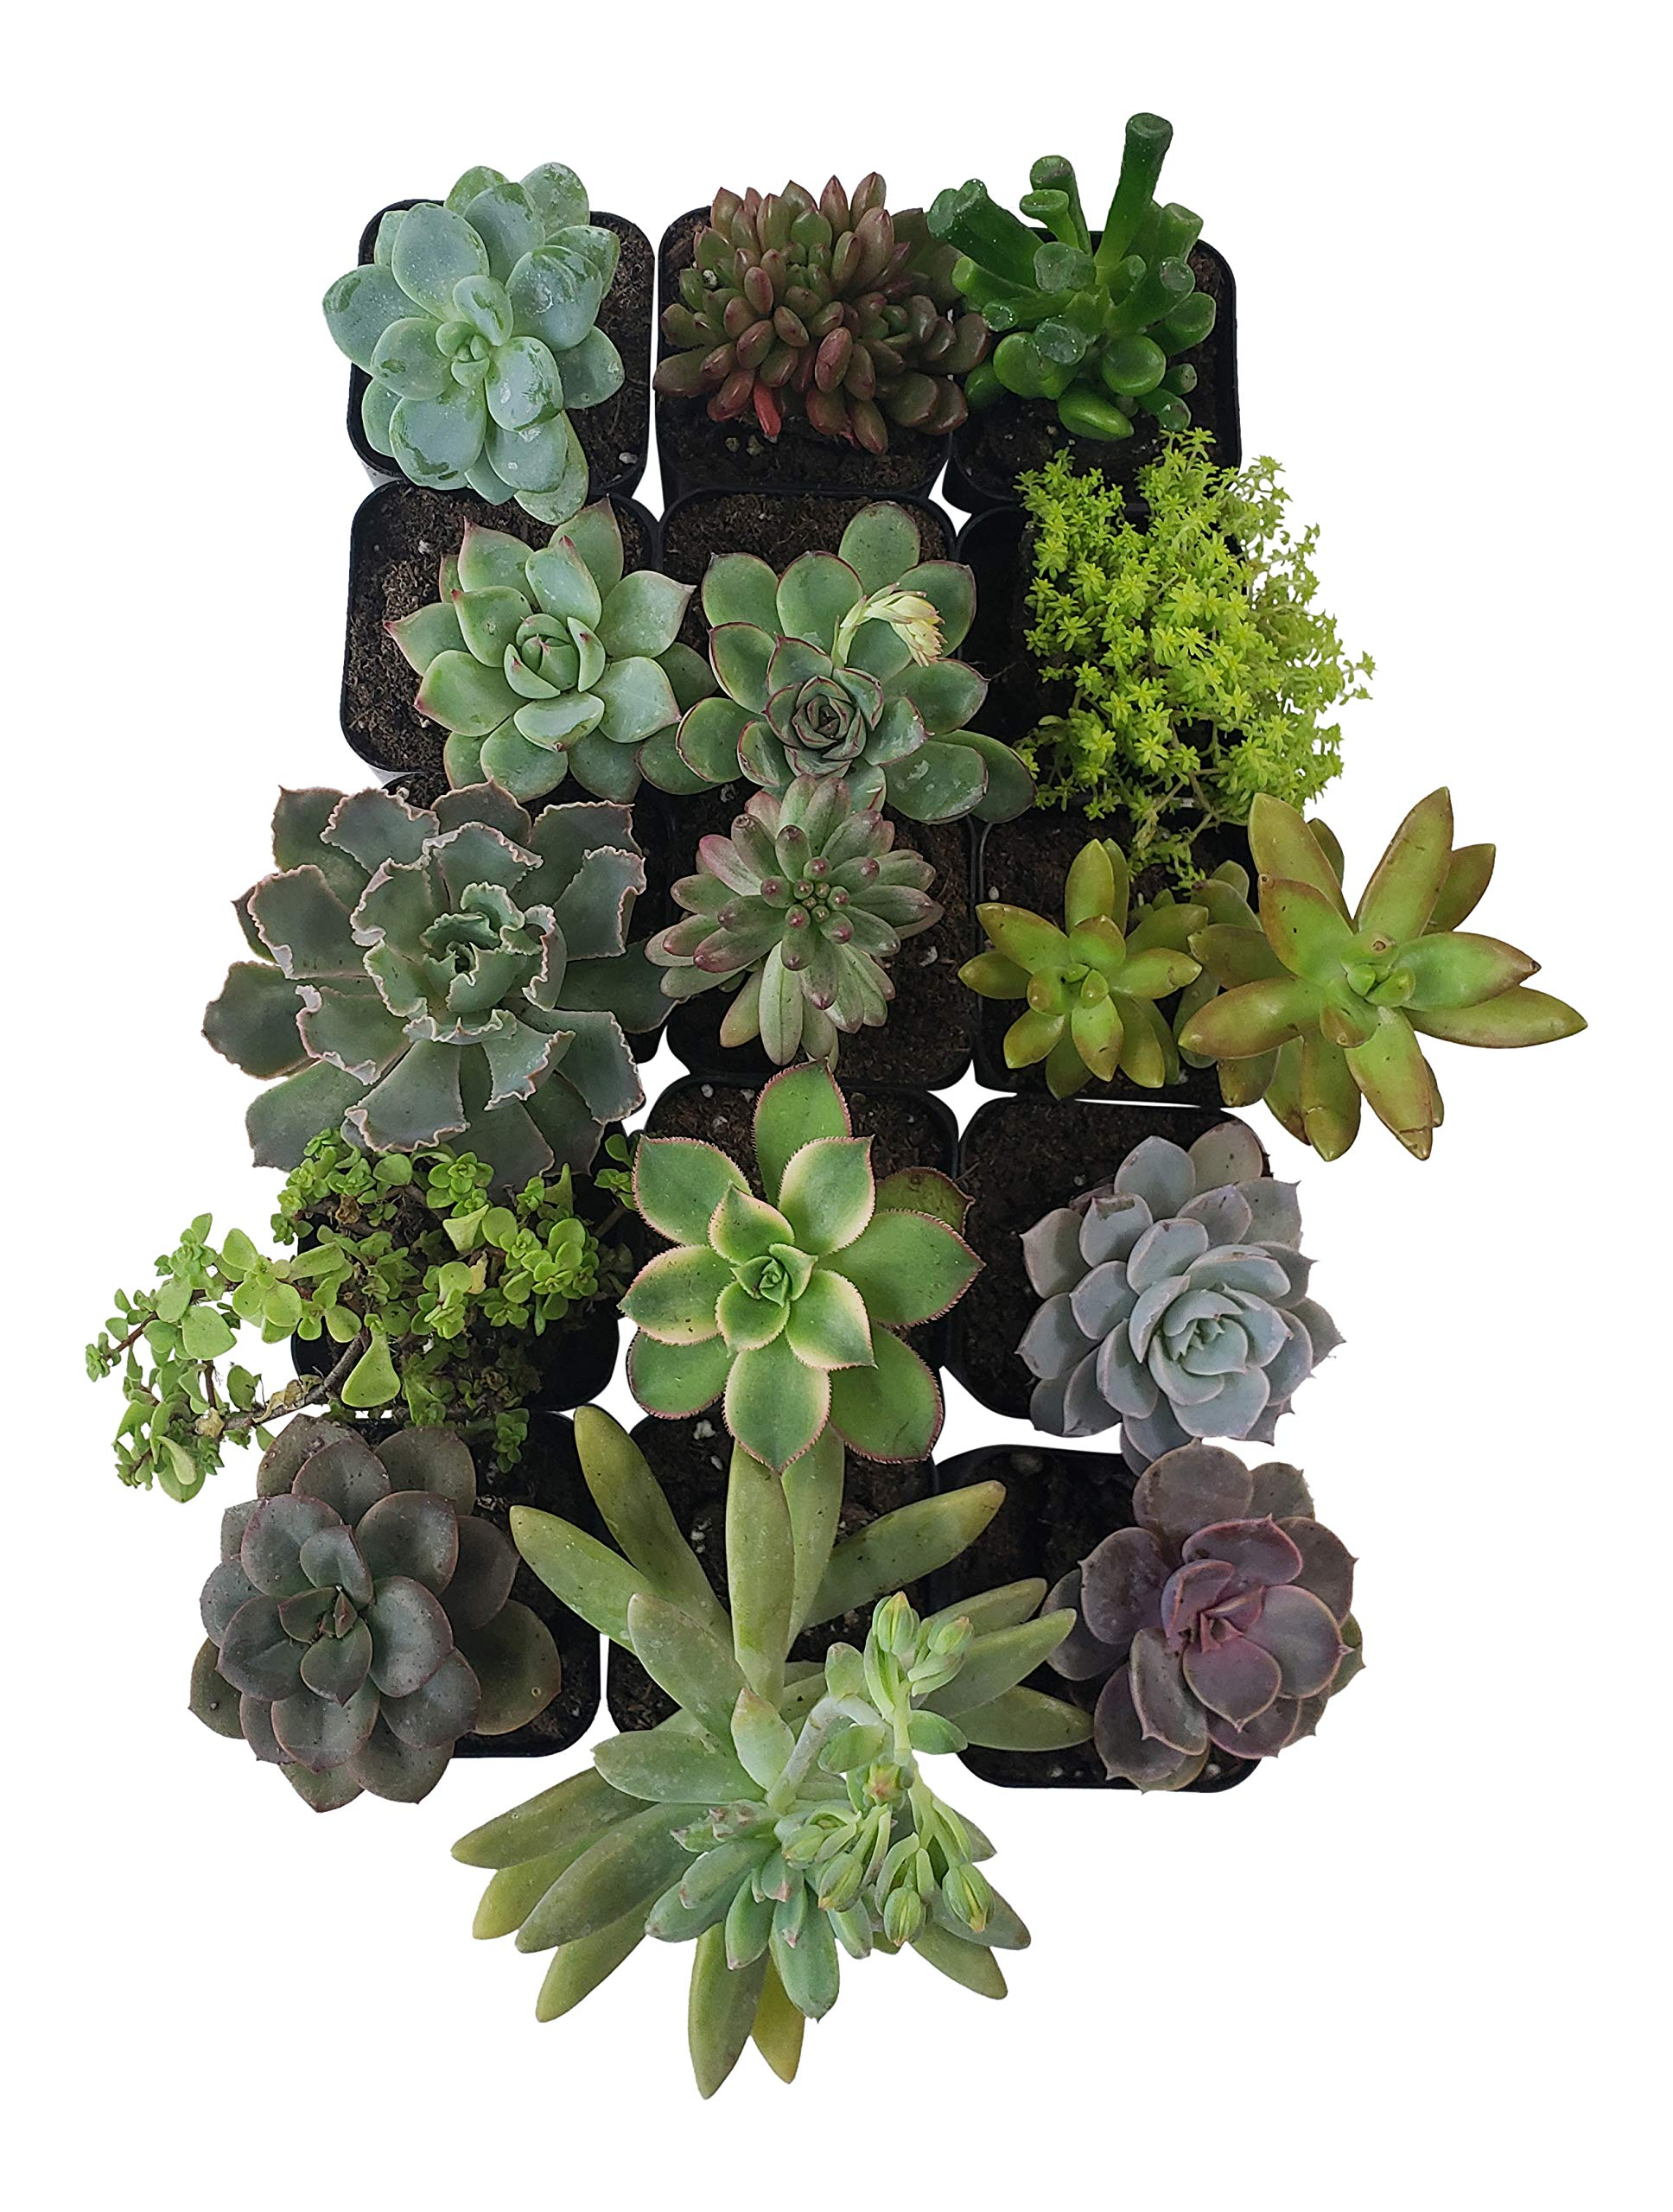 Succulent Plants [15 Pack Succulents] - Rooted 2 Inch Succulents in Planter Pots with Soil, Unique Live Indoor Plants for Decoration, Easy Care Plant Decor by Succulent Depot